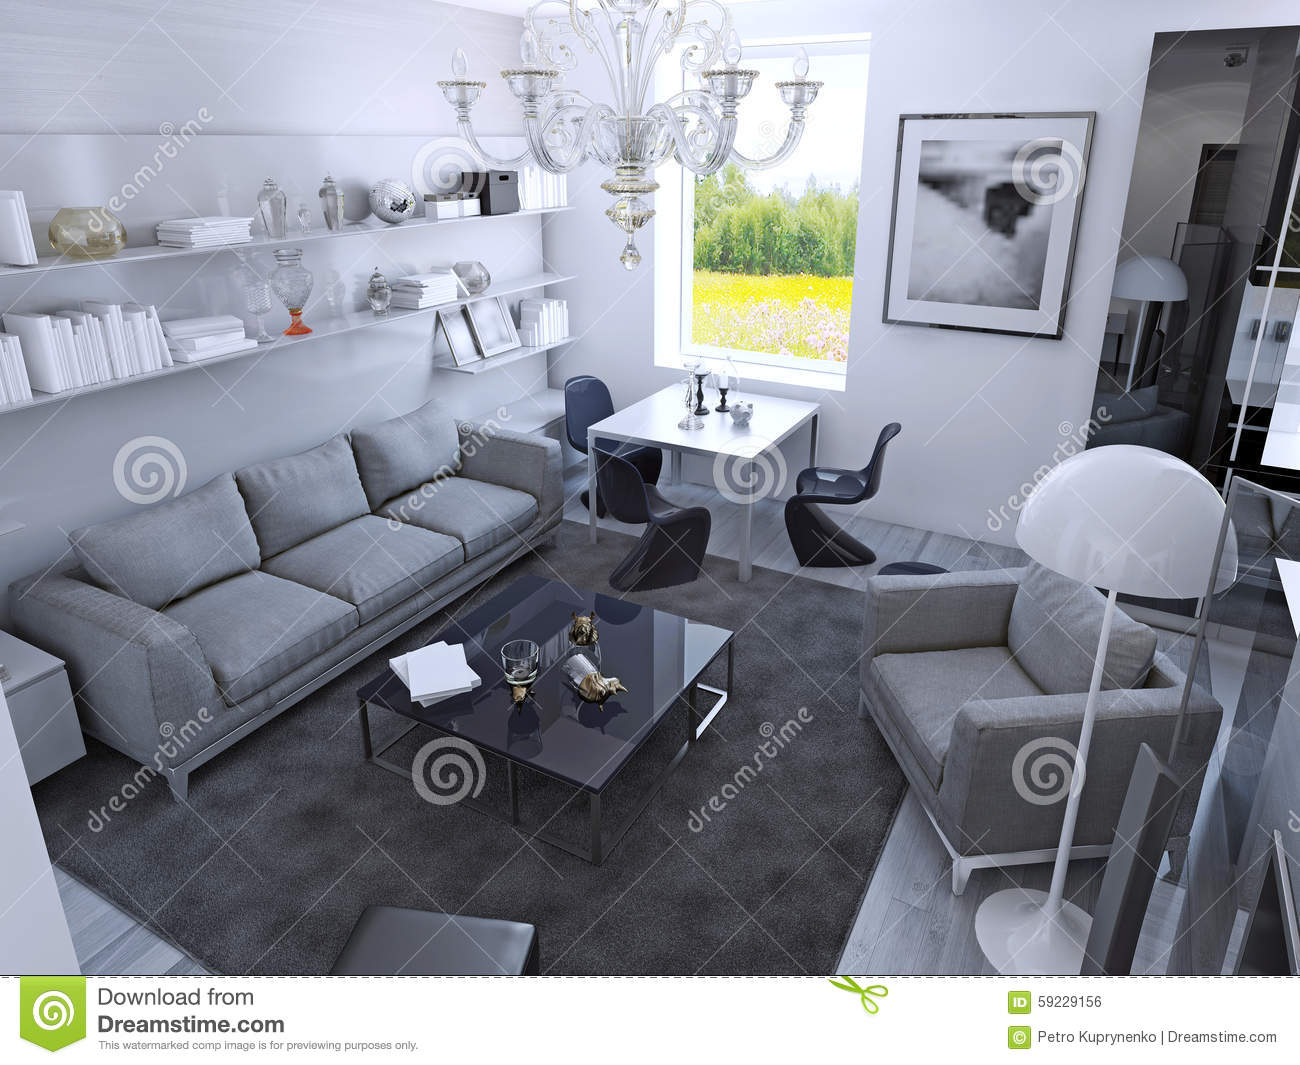 grey carpet in living room interior design for indian style contemporary daylight stock illustration with dining table gothic light furniture wet asphalt color on laminate flooring